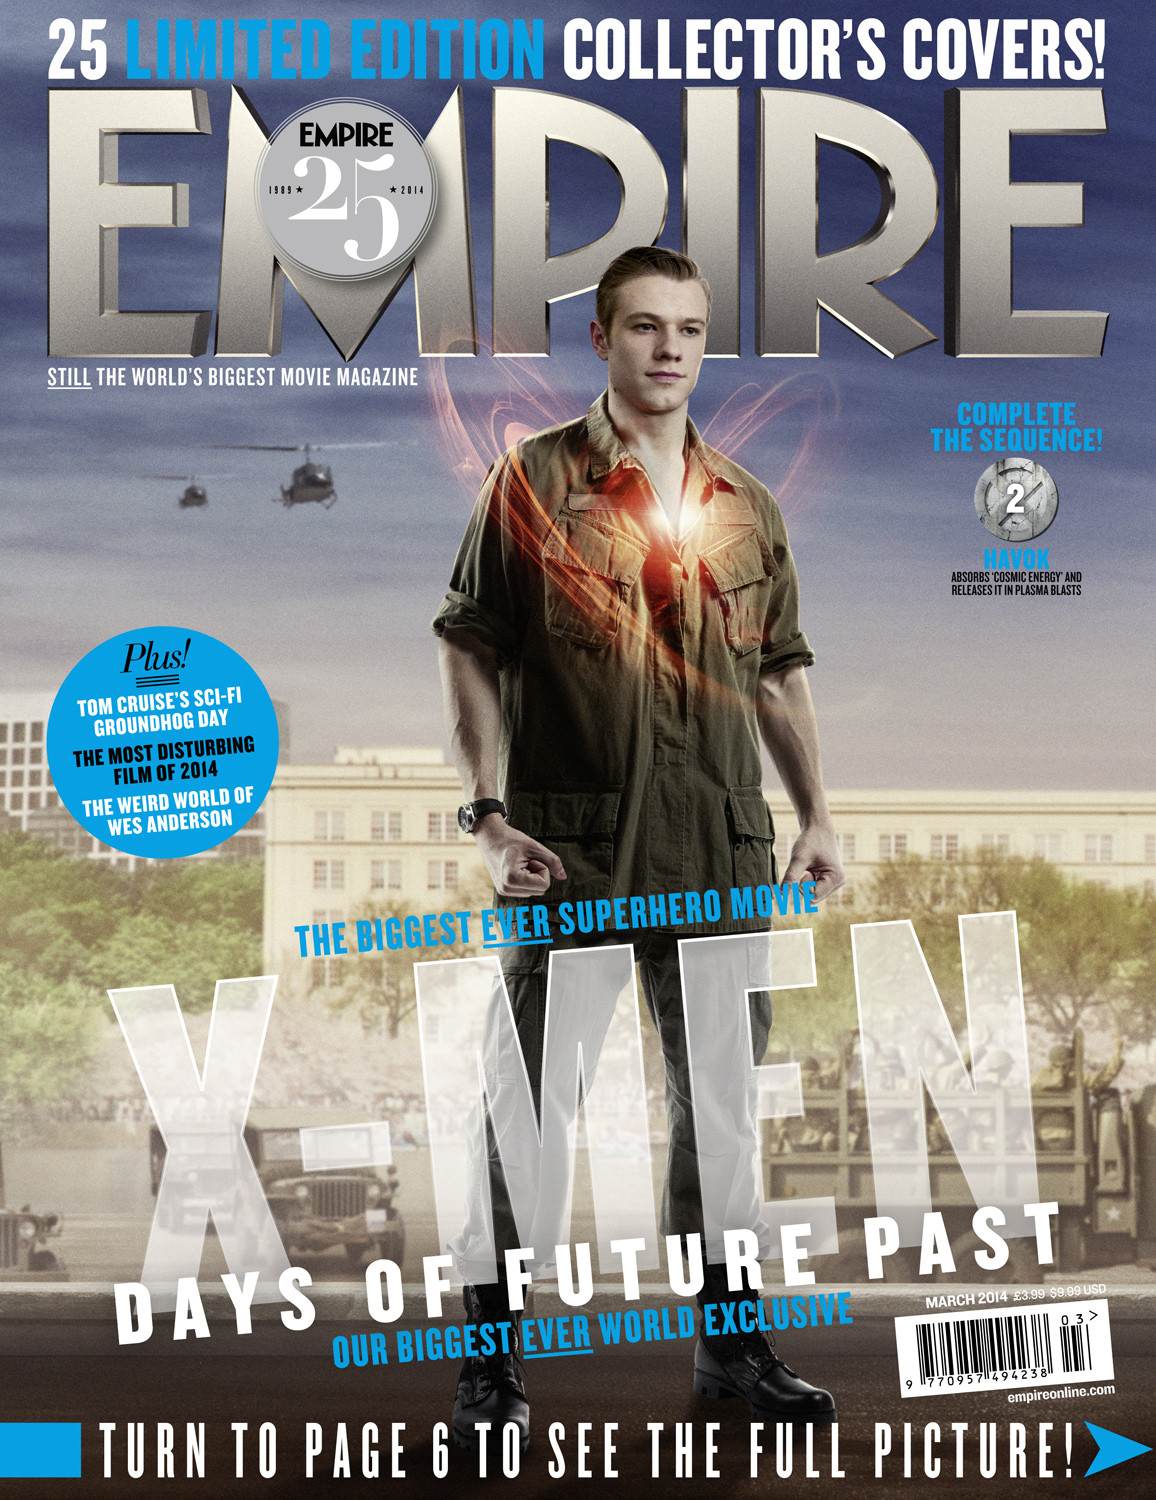 Empire - XDOFP Cover - 002 - Havok